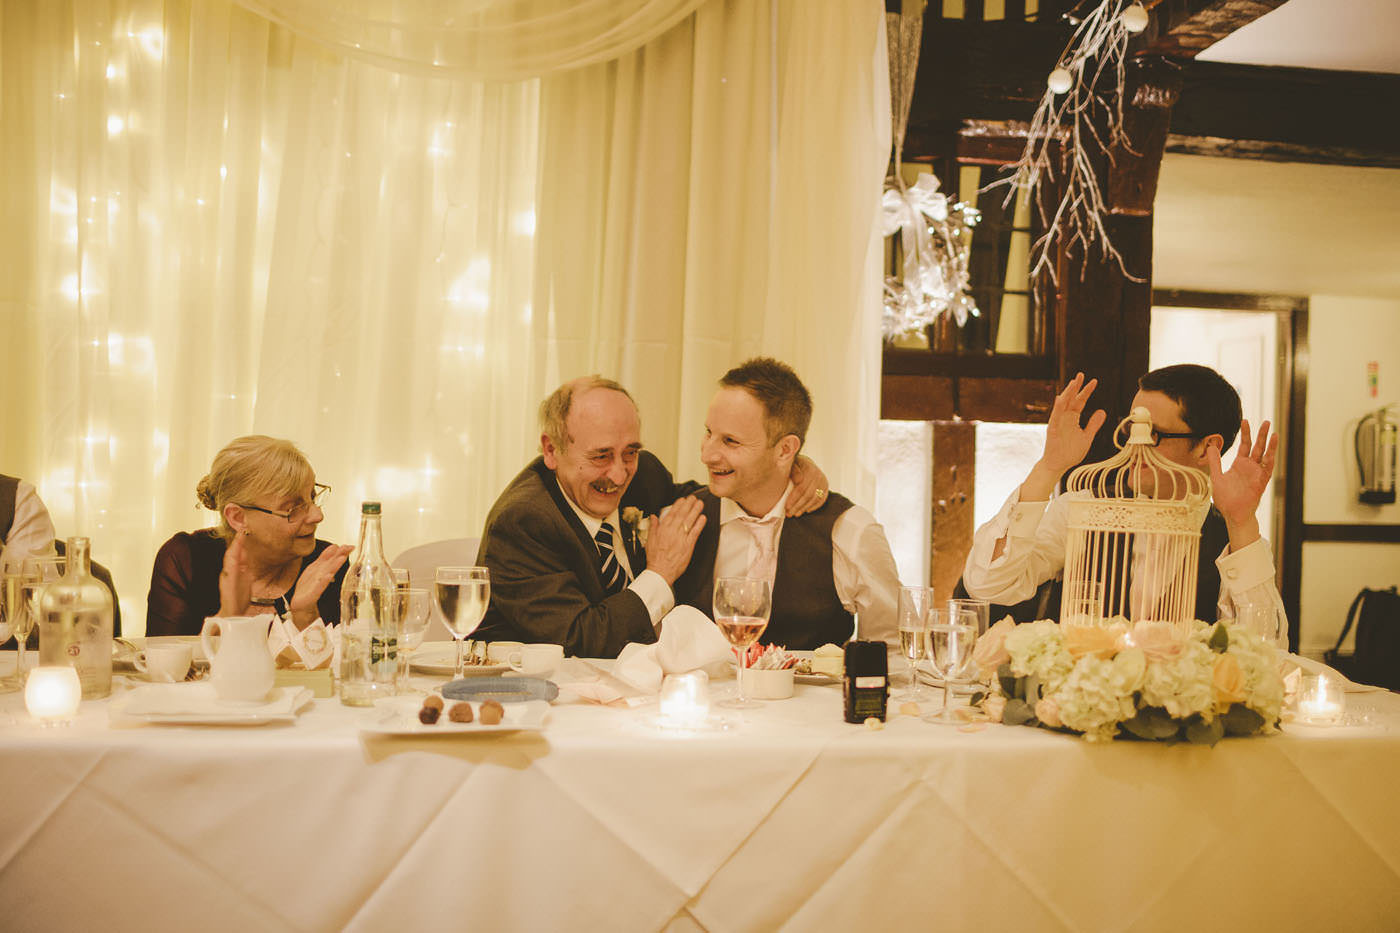 edmundjasveen burford bridge hotel wedding photographer 0100